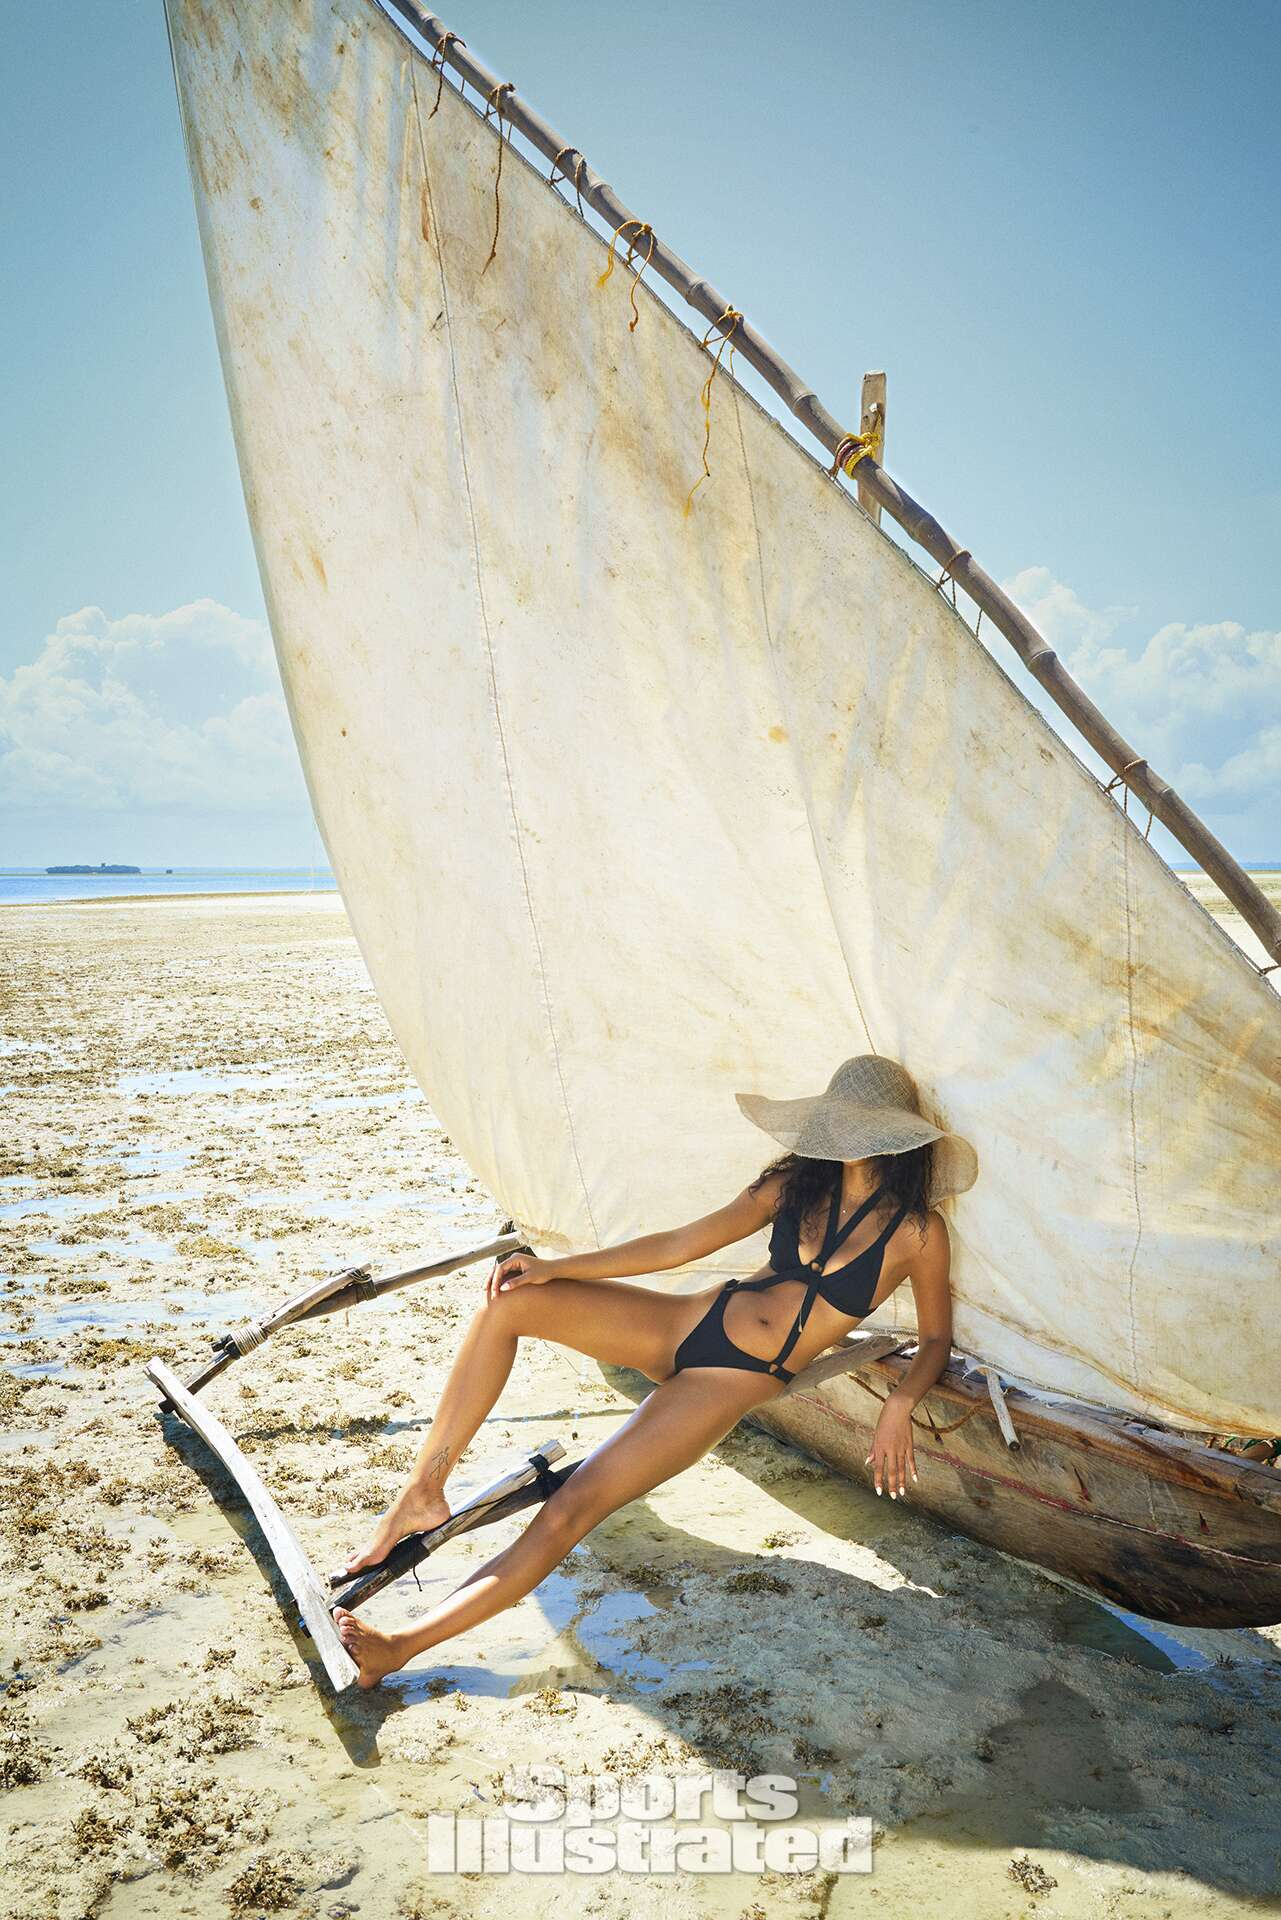 Chanel Iman was photographed by Ruven Afanador in Zanzibar. Swimsuit by Minimale Animale.